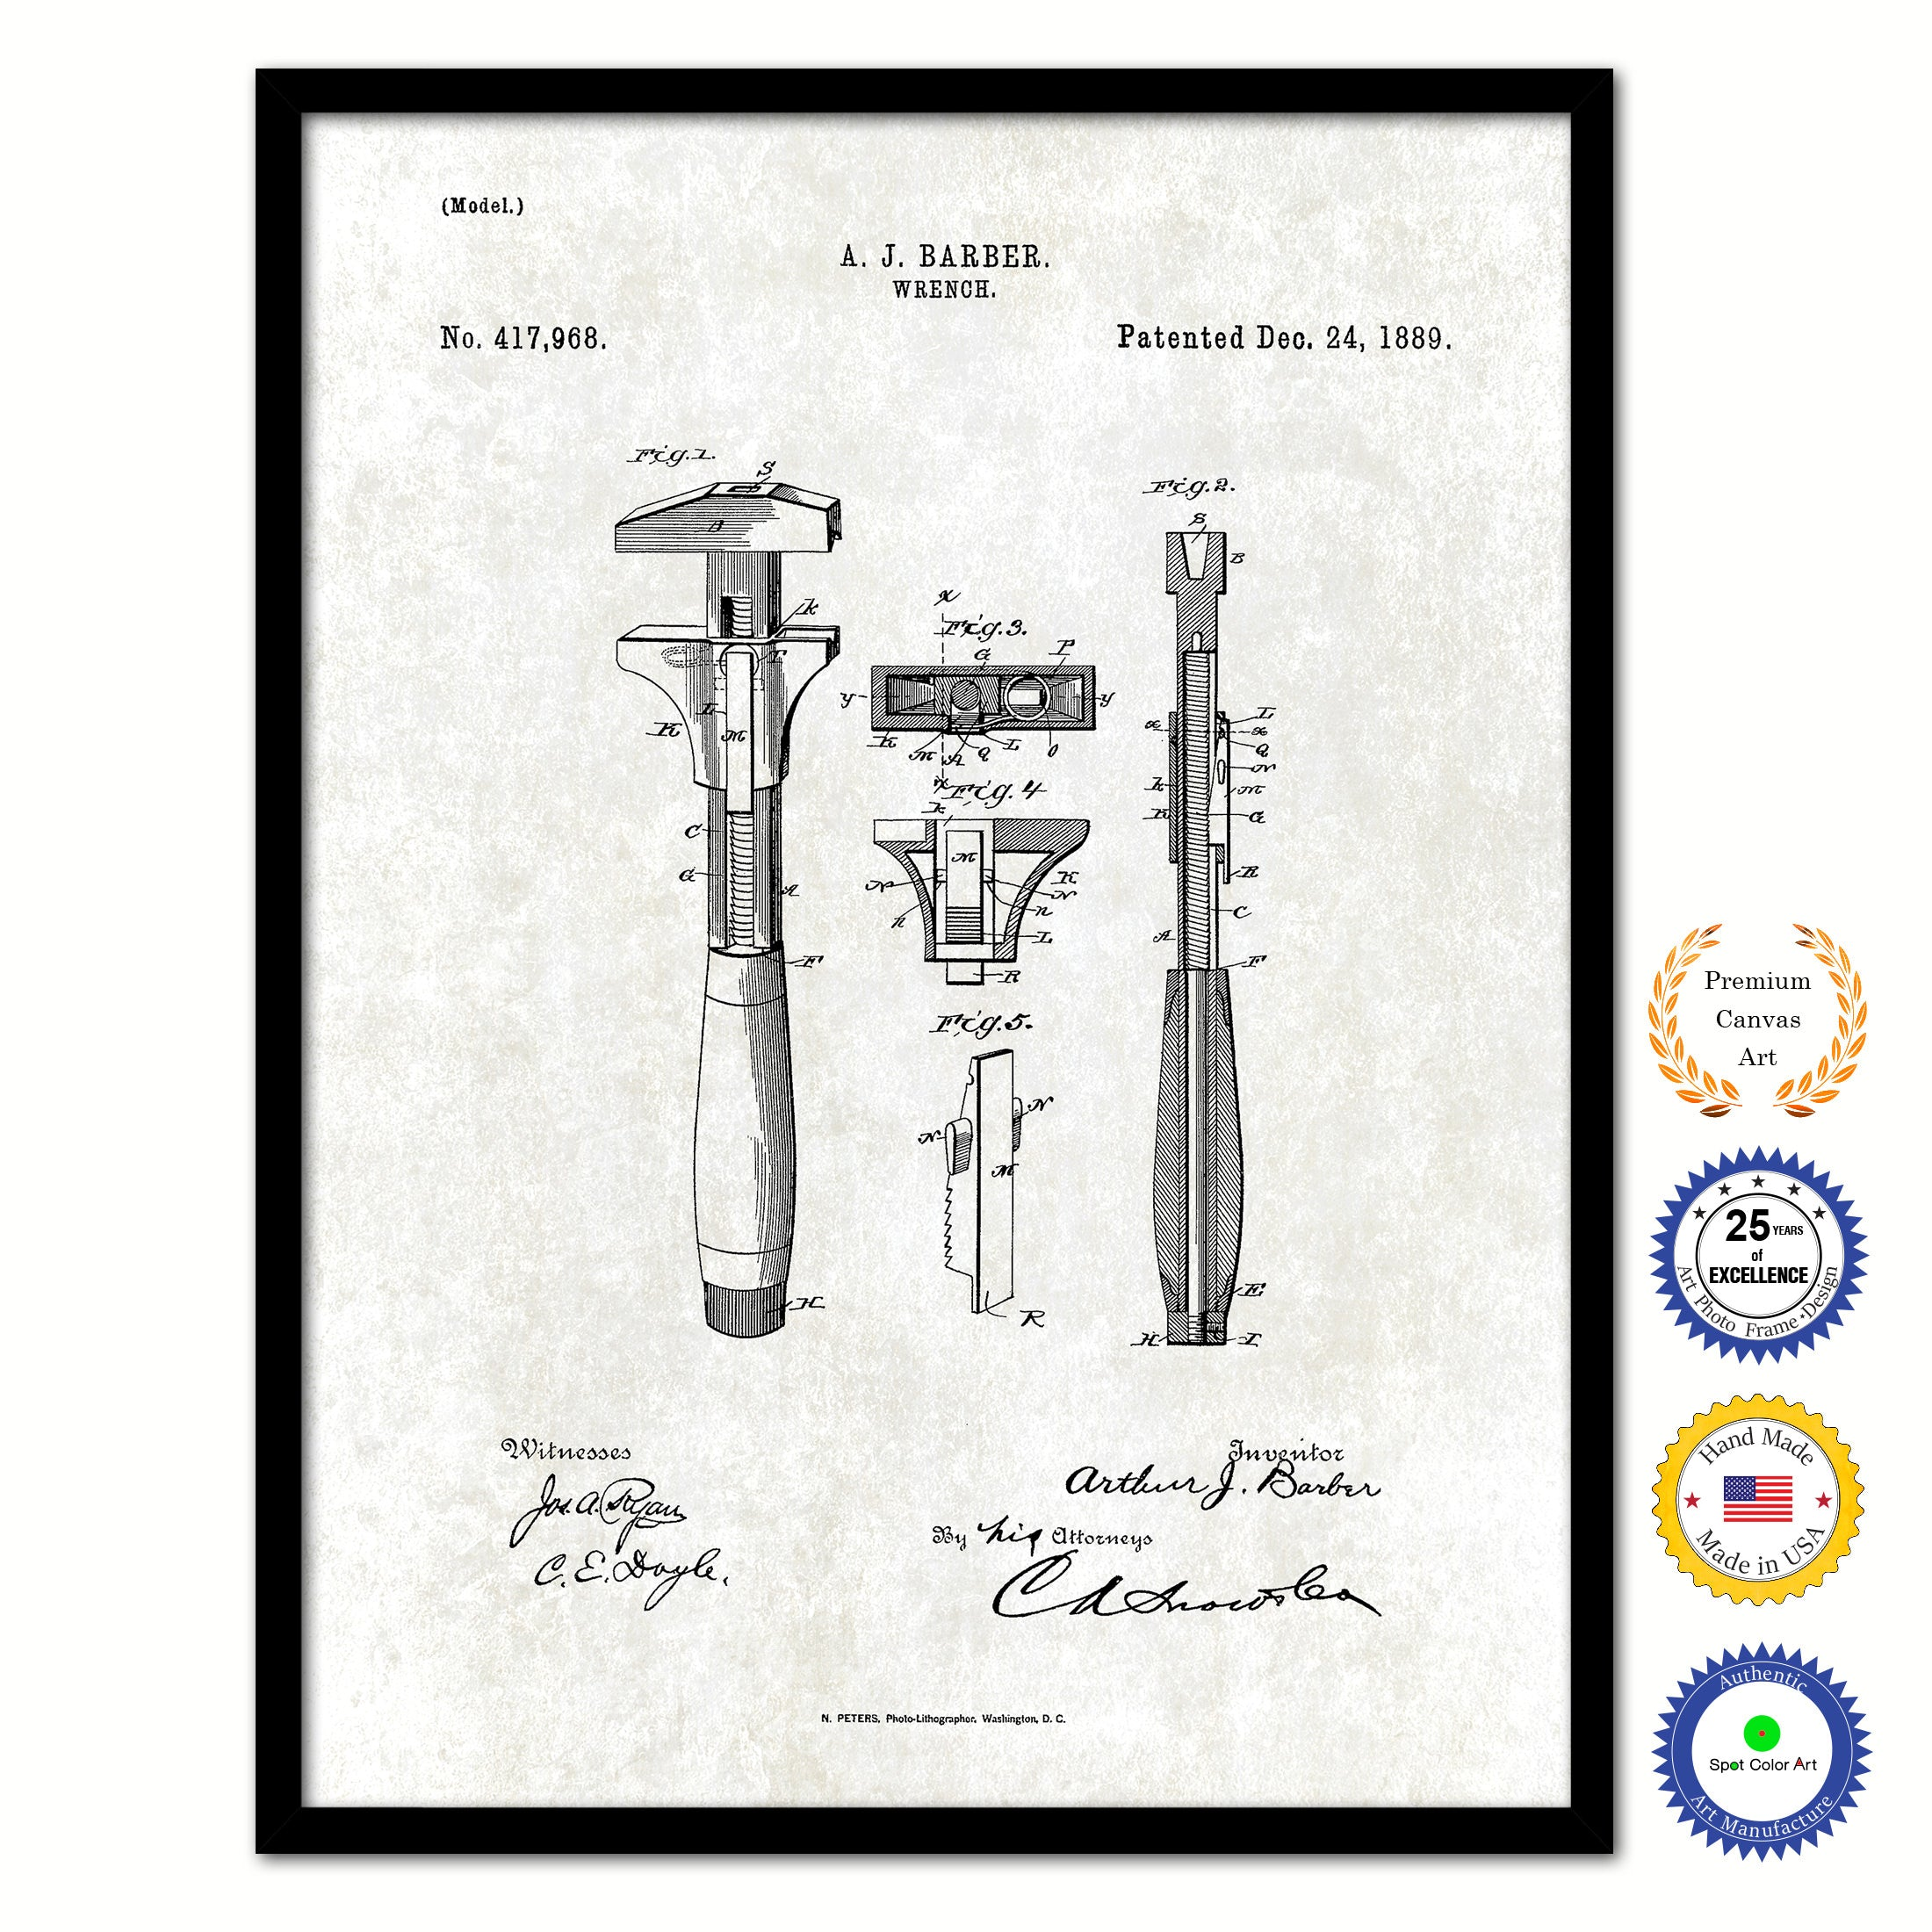 1889 Wrench Old Patent Art Print on Canvas Custom Framed Vintage Home Decor Wall Decoration Great for Gifts